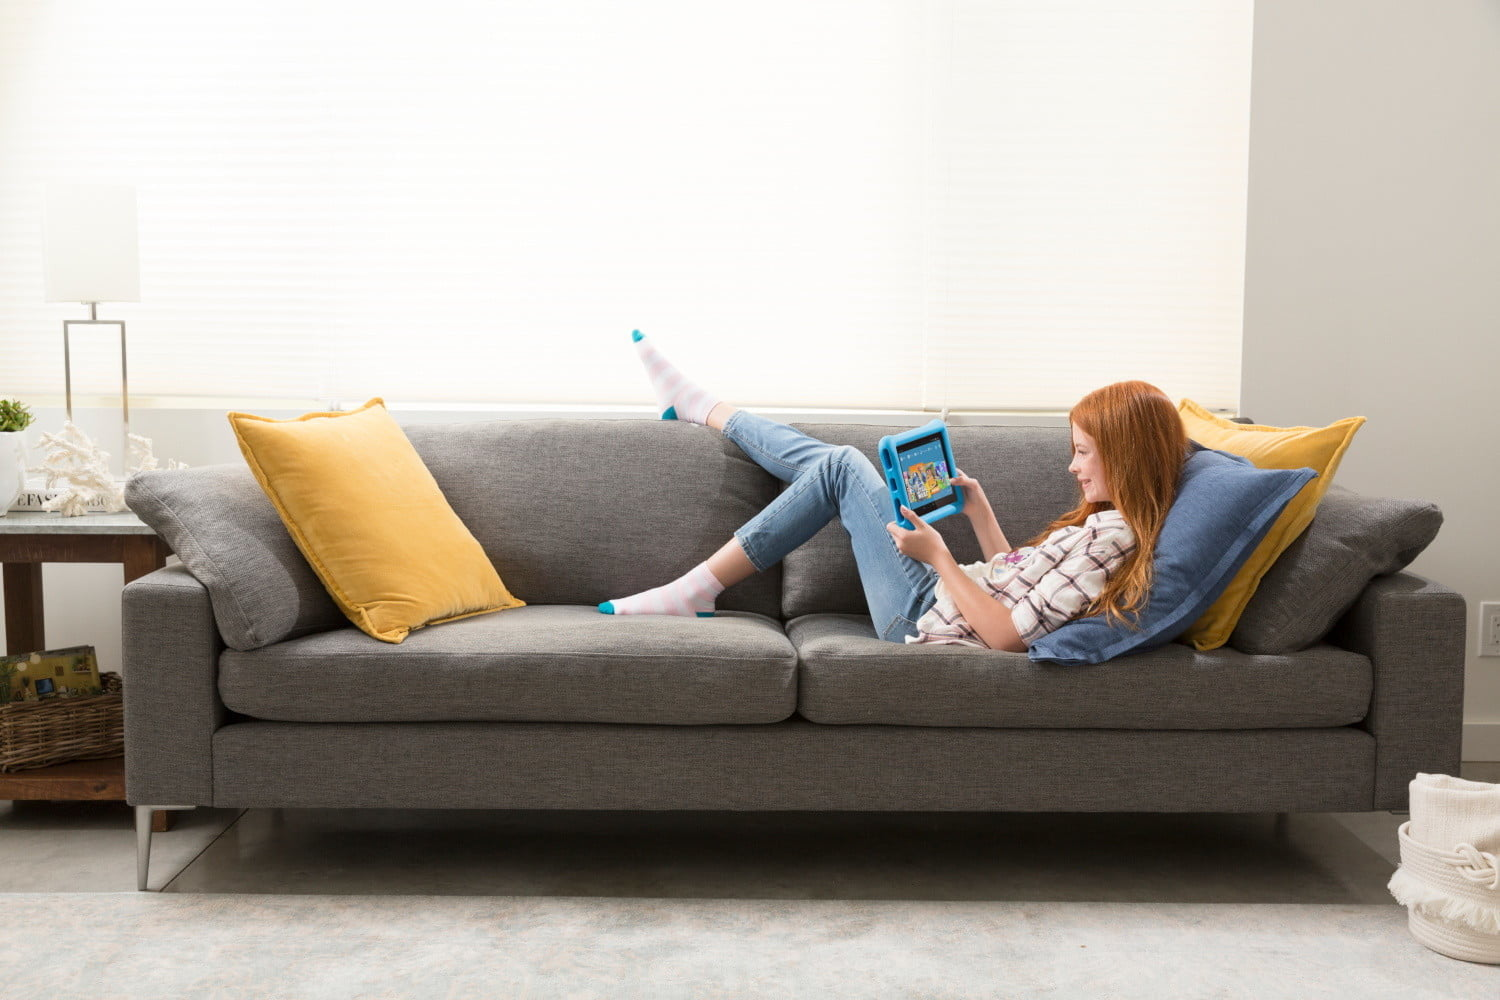 fire-hd-10-kids-edition-couch-1500x1000.jpg